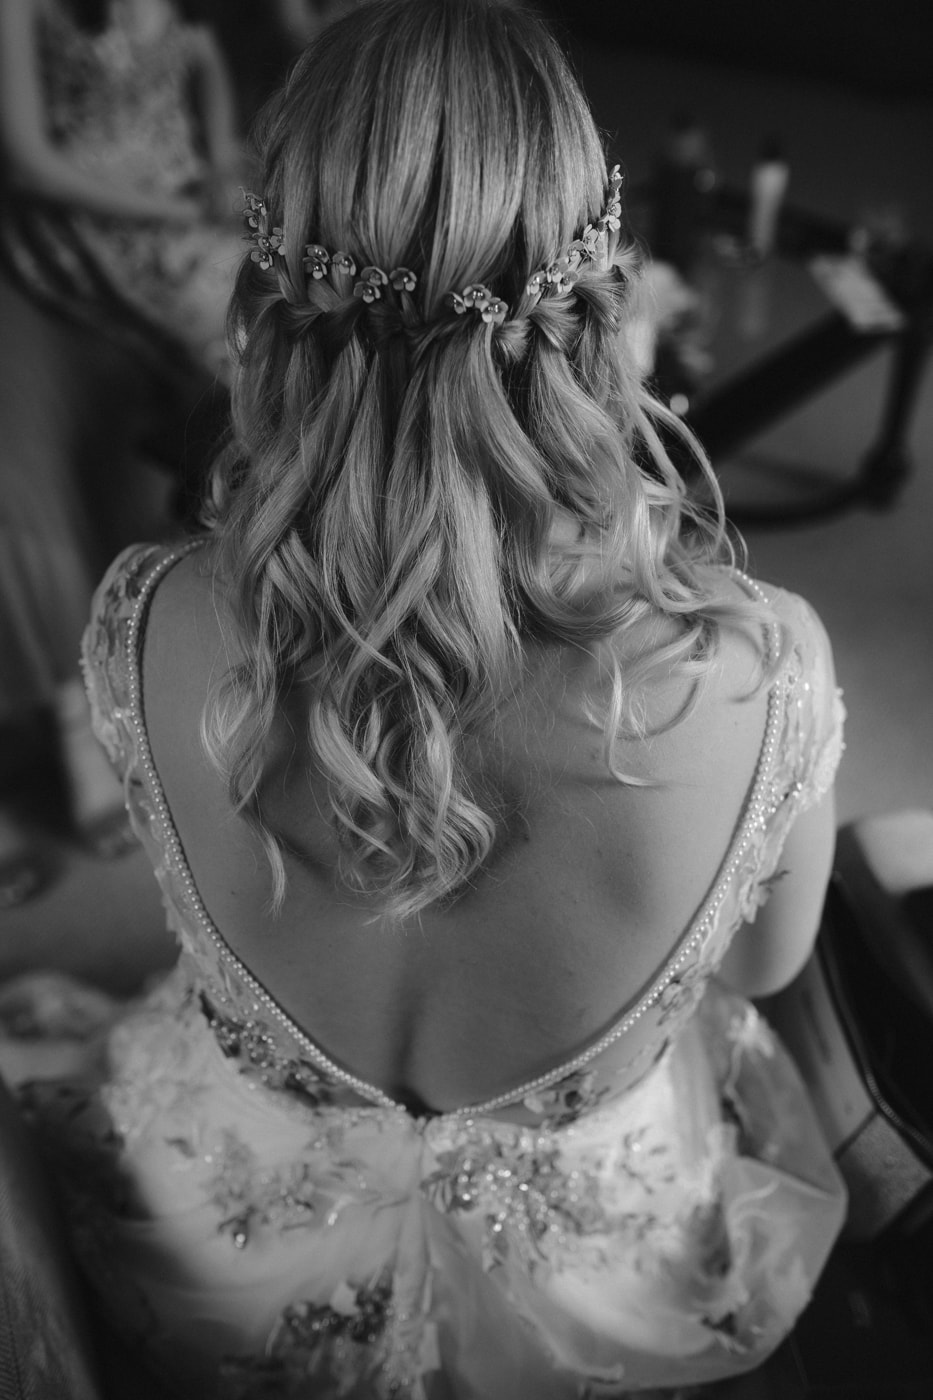 Wedding Dress and Hair Portrait at Storrs Hall Wedding